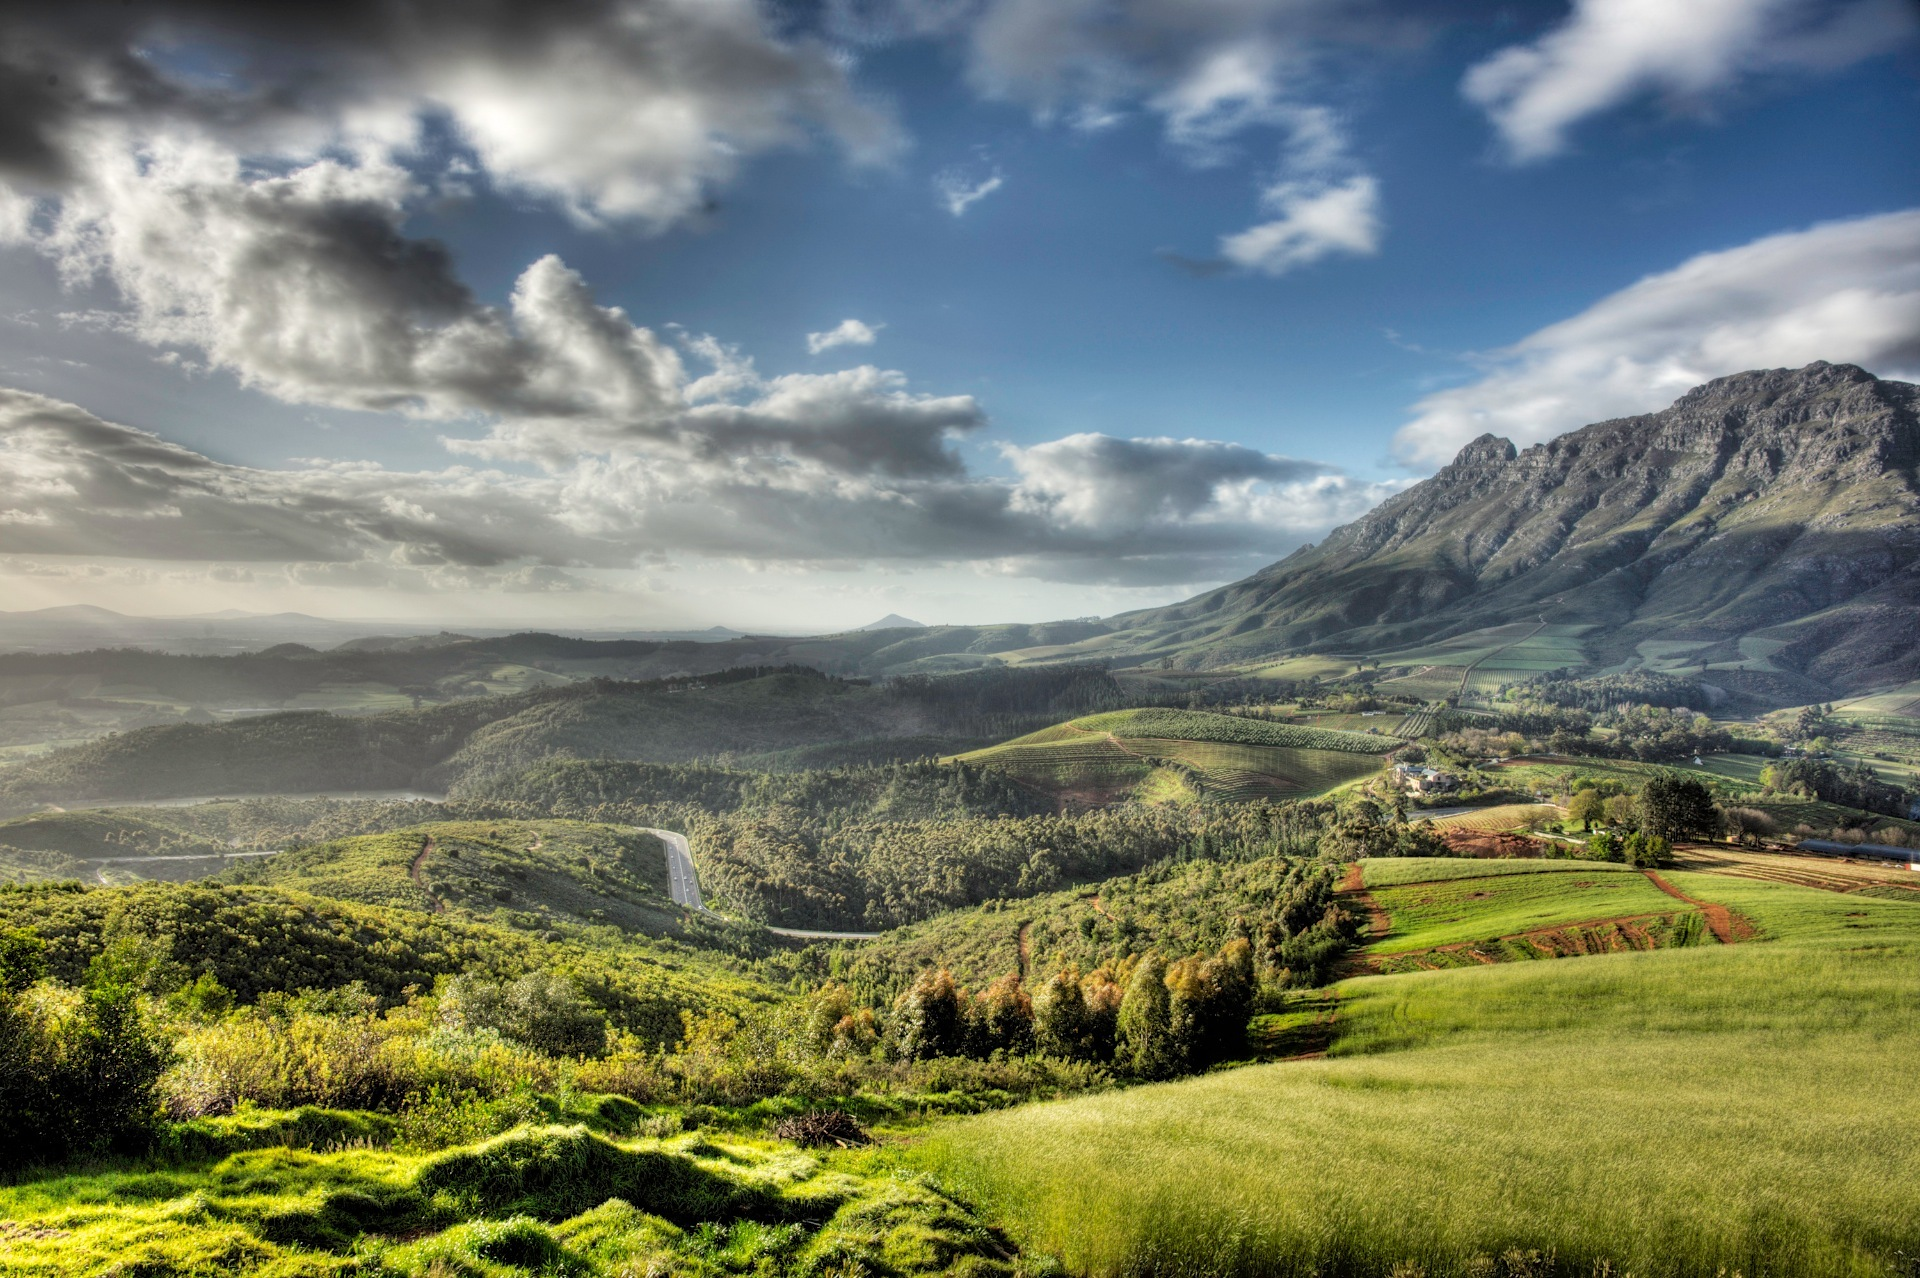 View of Stellenbosch wine region and Simonsberg Mountain